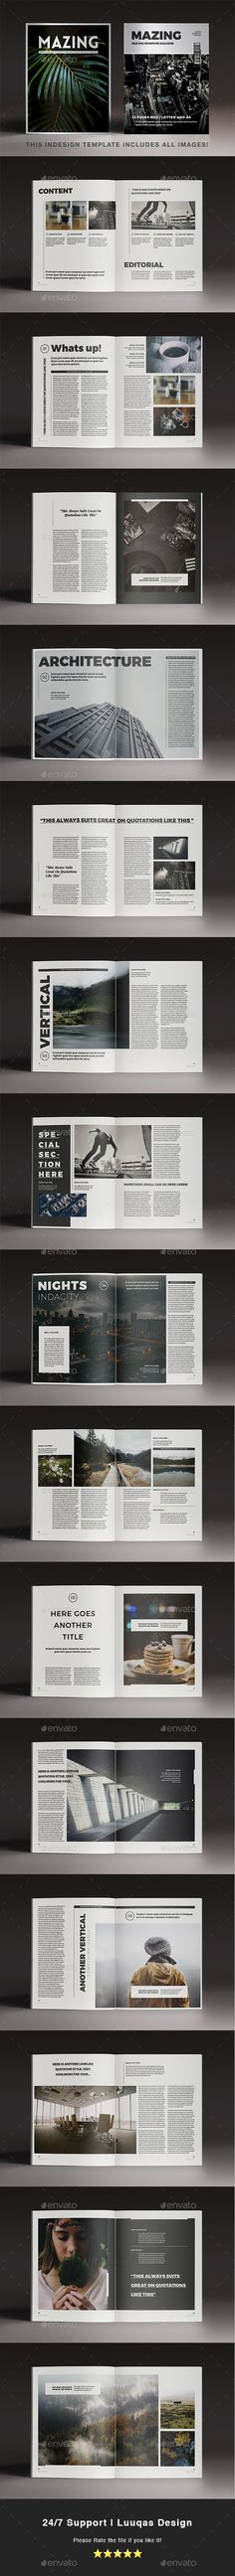 Mazing Magazine Template — InDesign INDD #colorful #fashion folio • Download ➝ https://graphicriver.net/item/mazing-magazine-template/18942015?ref=pxcr